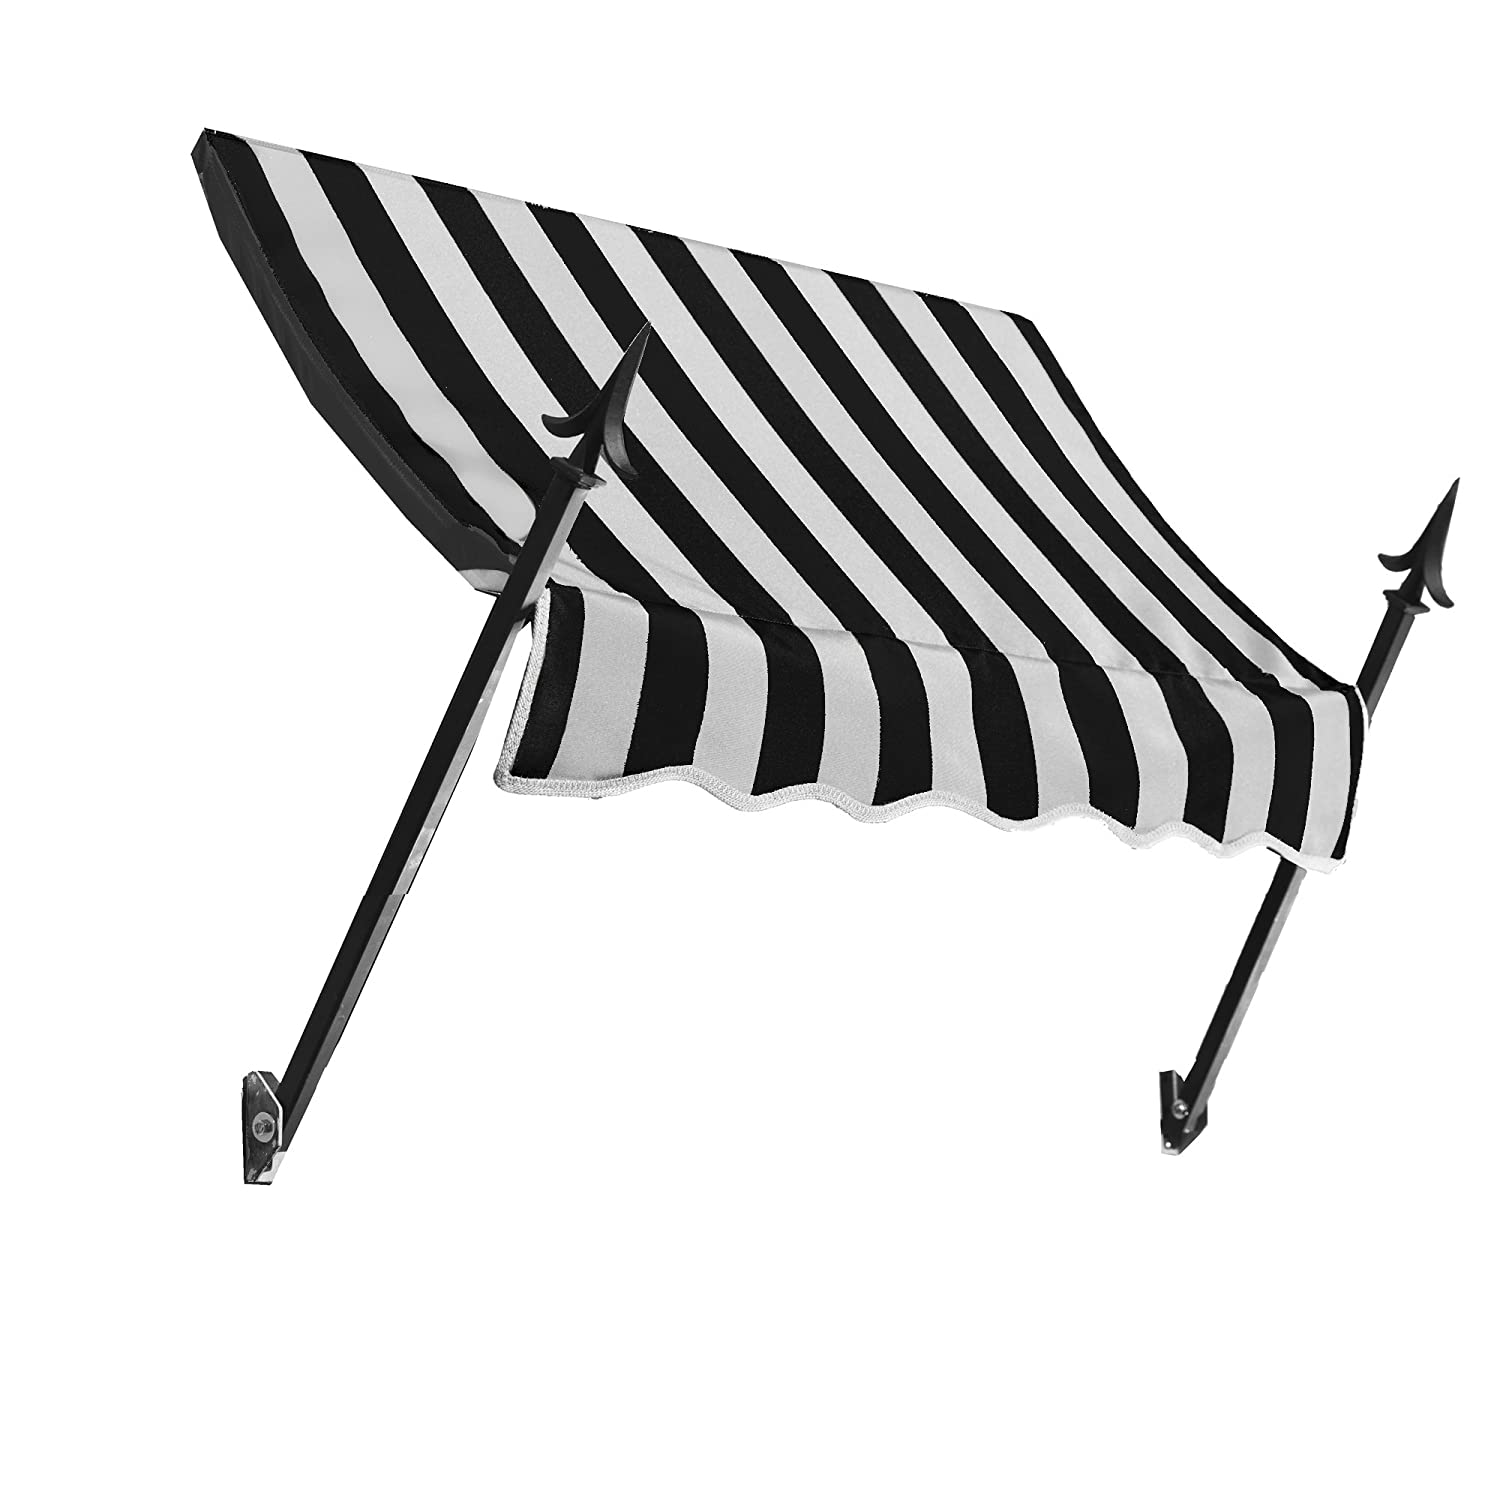 Awntech 3-Feet New Orleans Awning, 31-Inch Height by 16-Inch Diameter, Black White